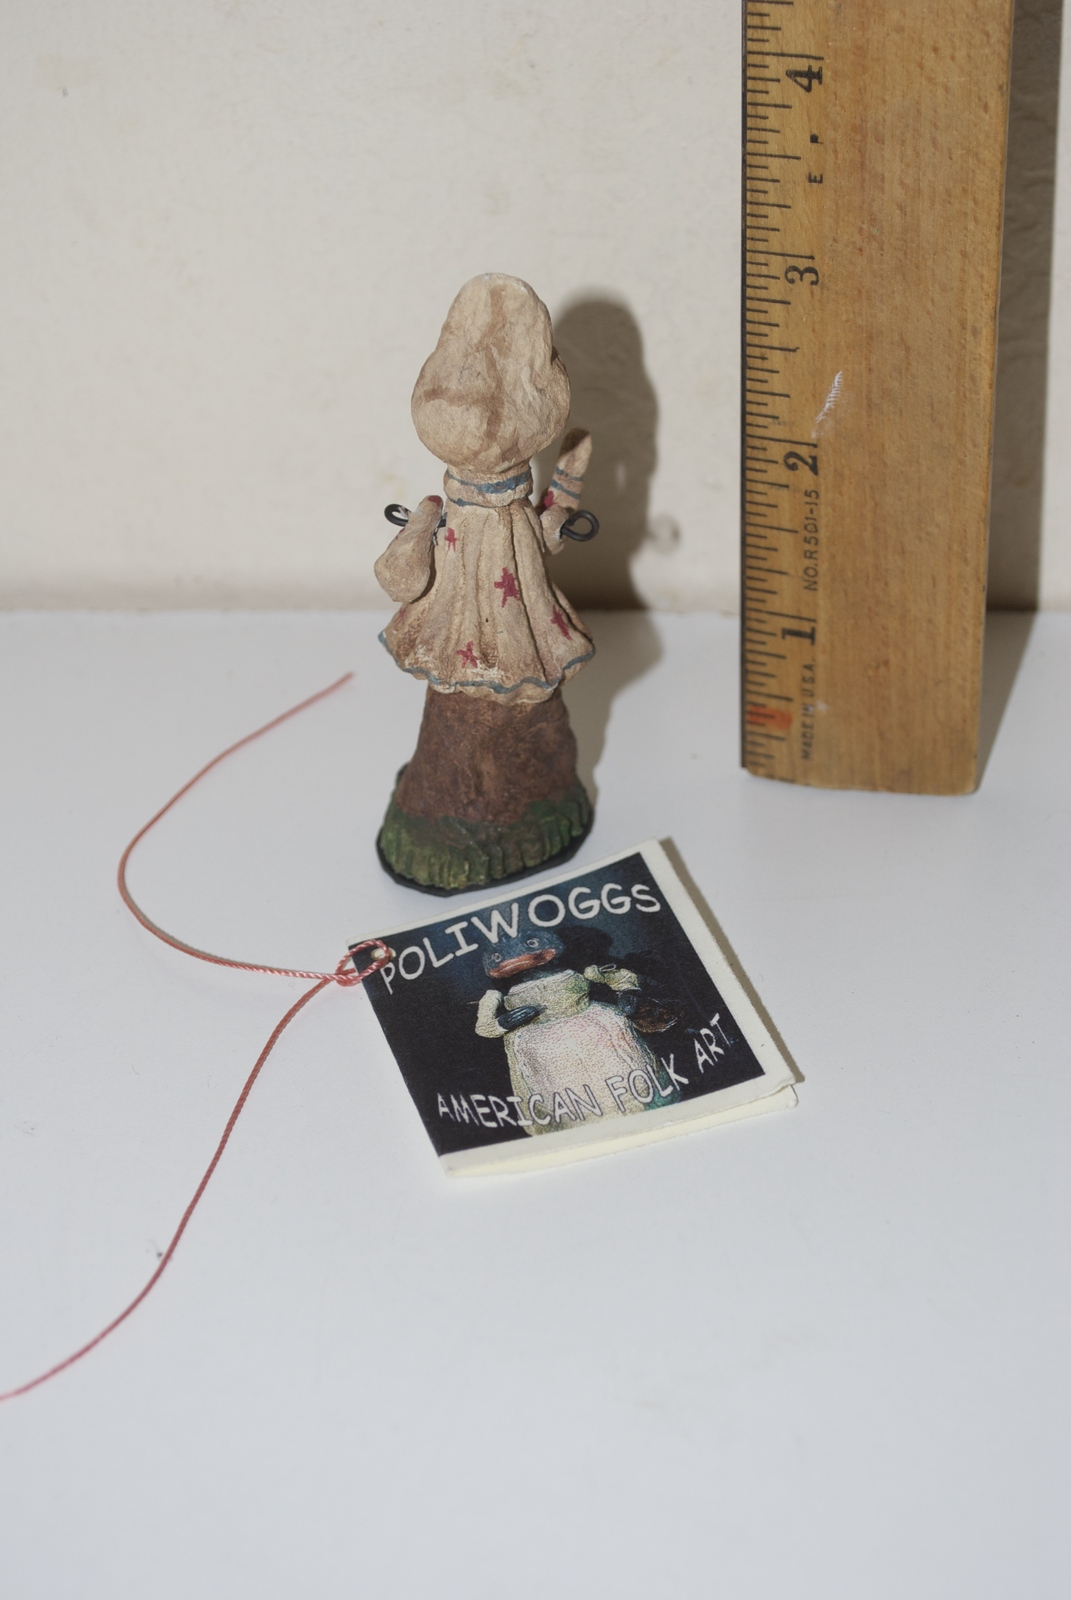 Poliwoggs American Folk Art Paper Maché 1998 Figurine Small Bunny Rabbit Girl